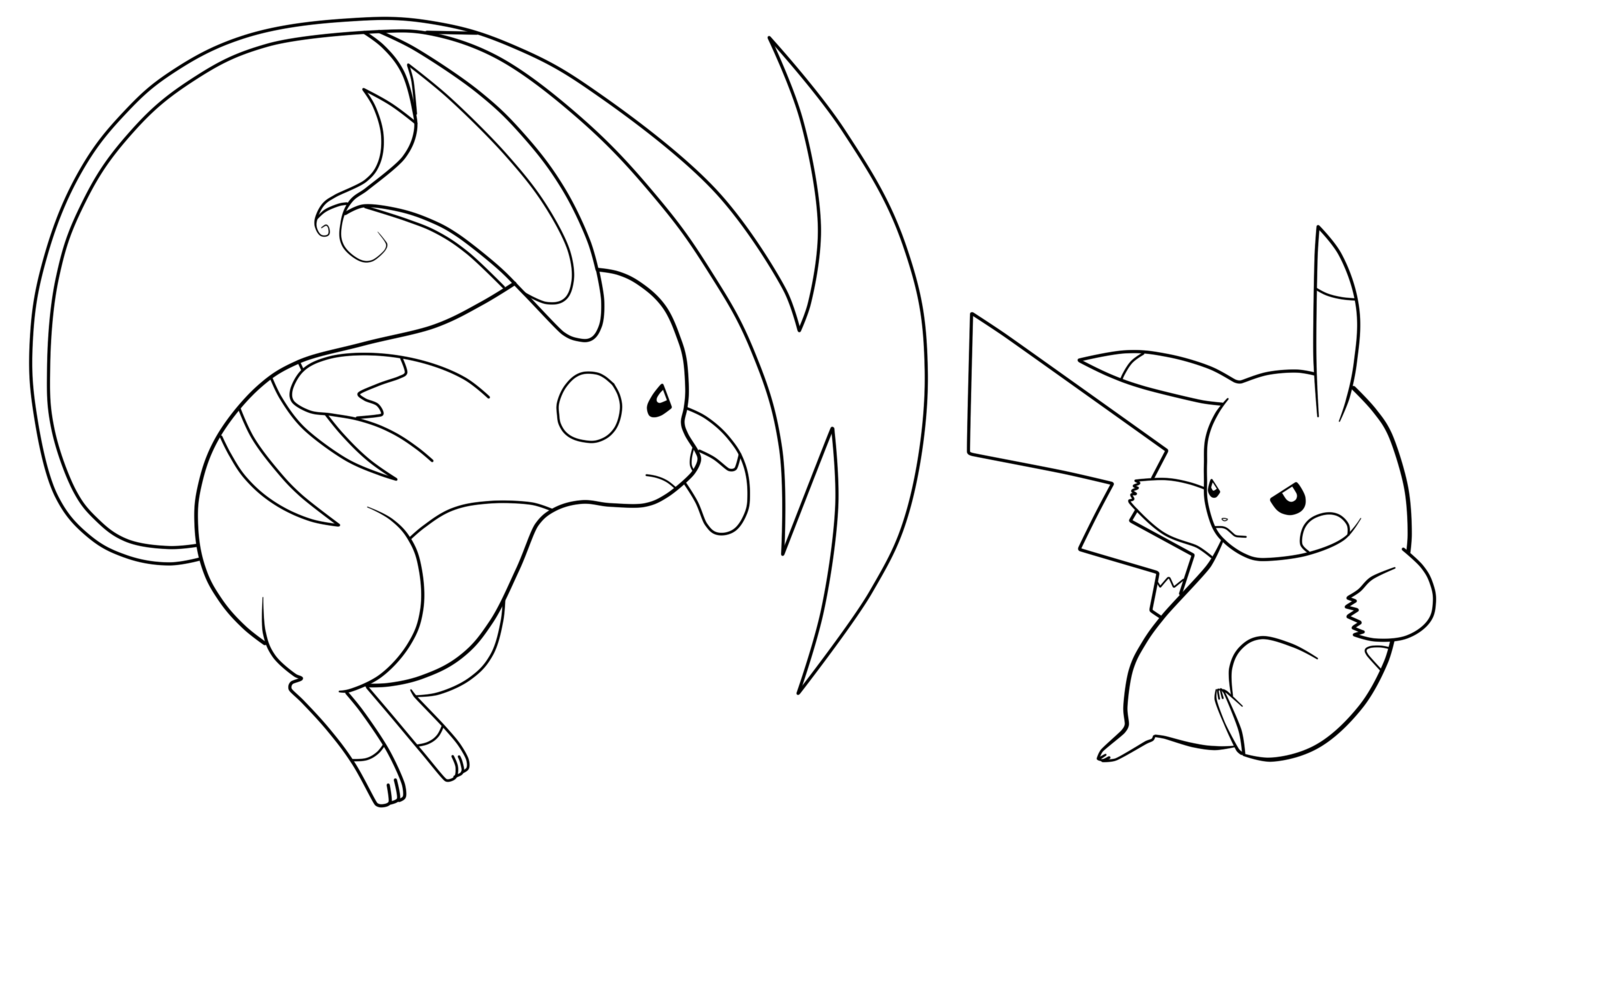 Raichu Coloring Page For Quick Pikachu Coloring Page Pokemon Coloring Pages Pokemon Coloring